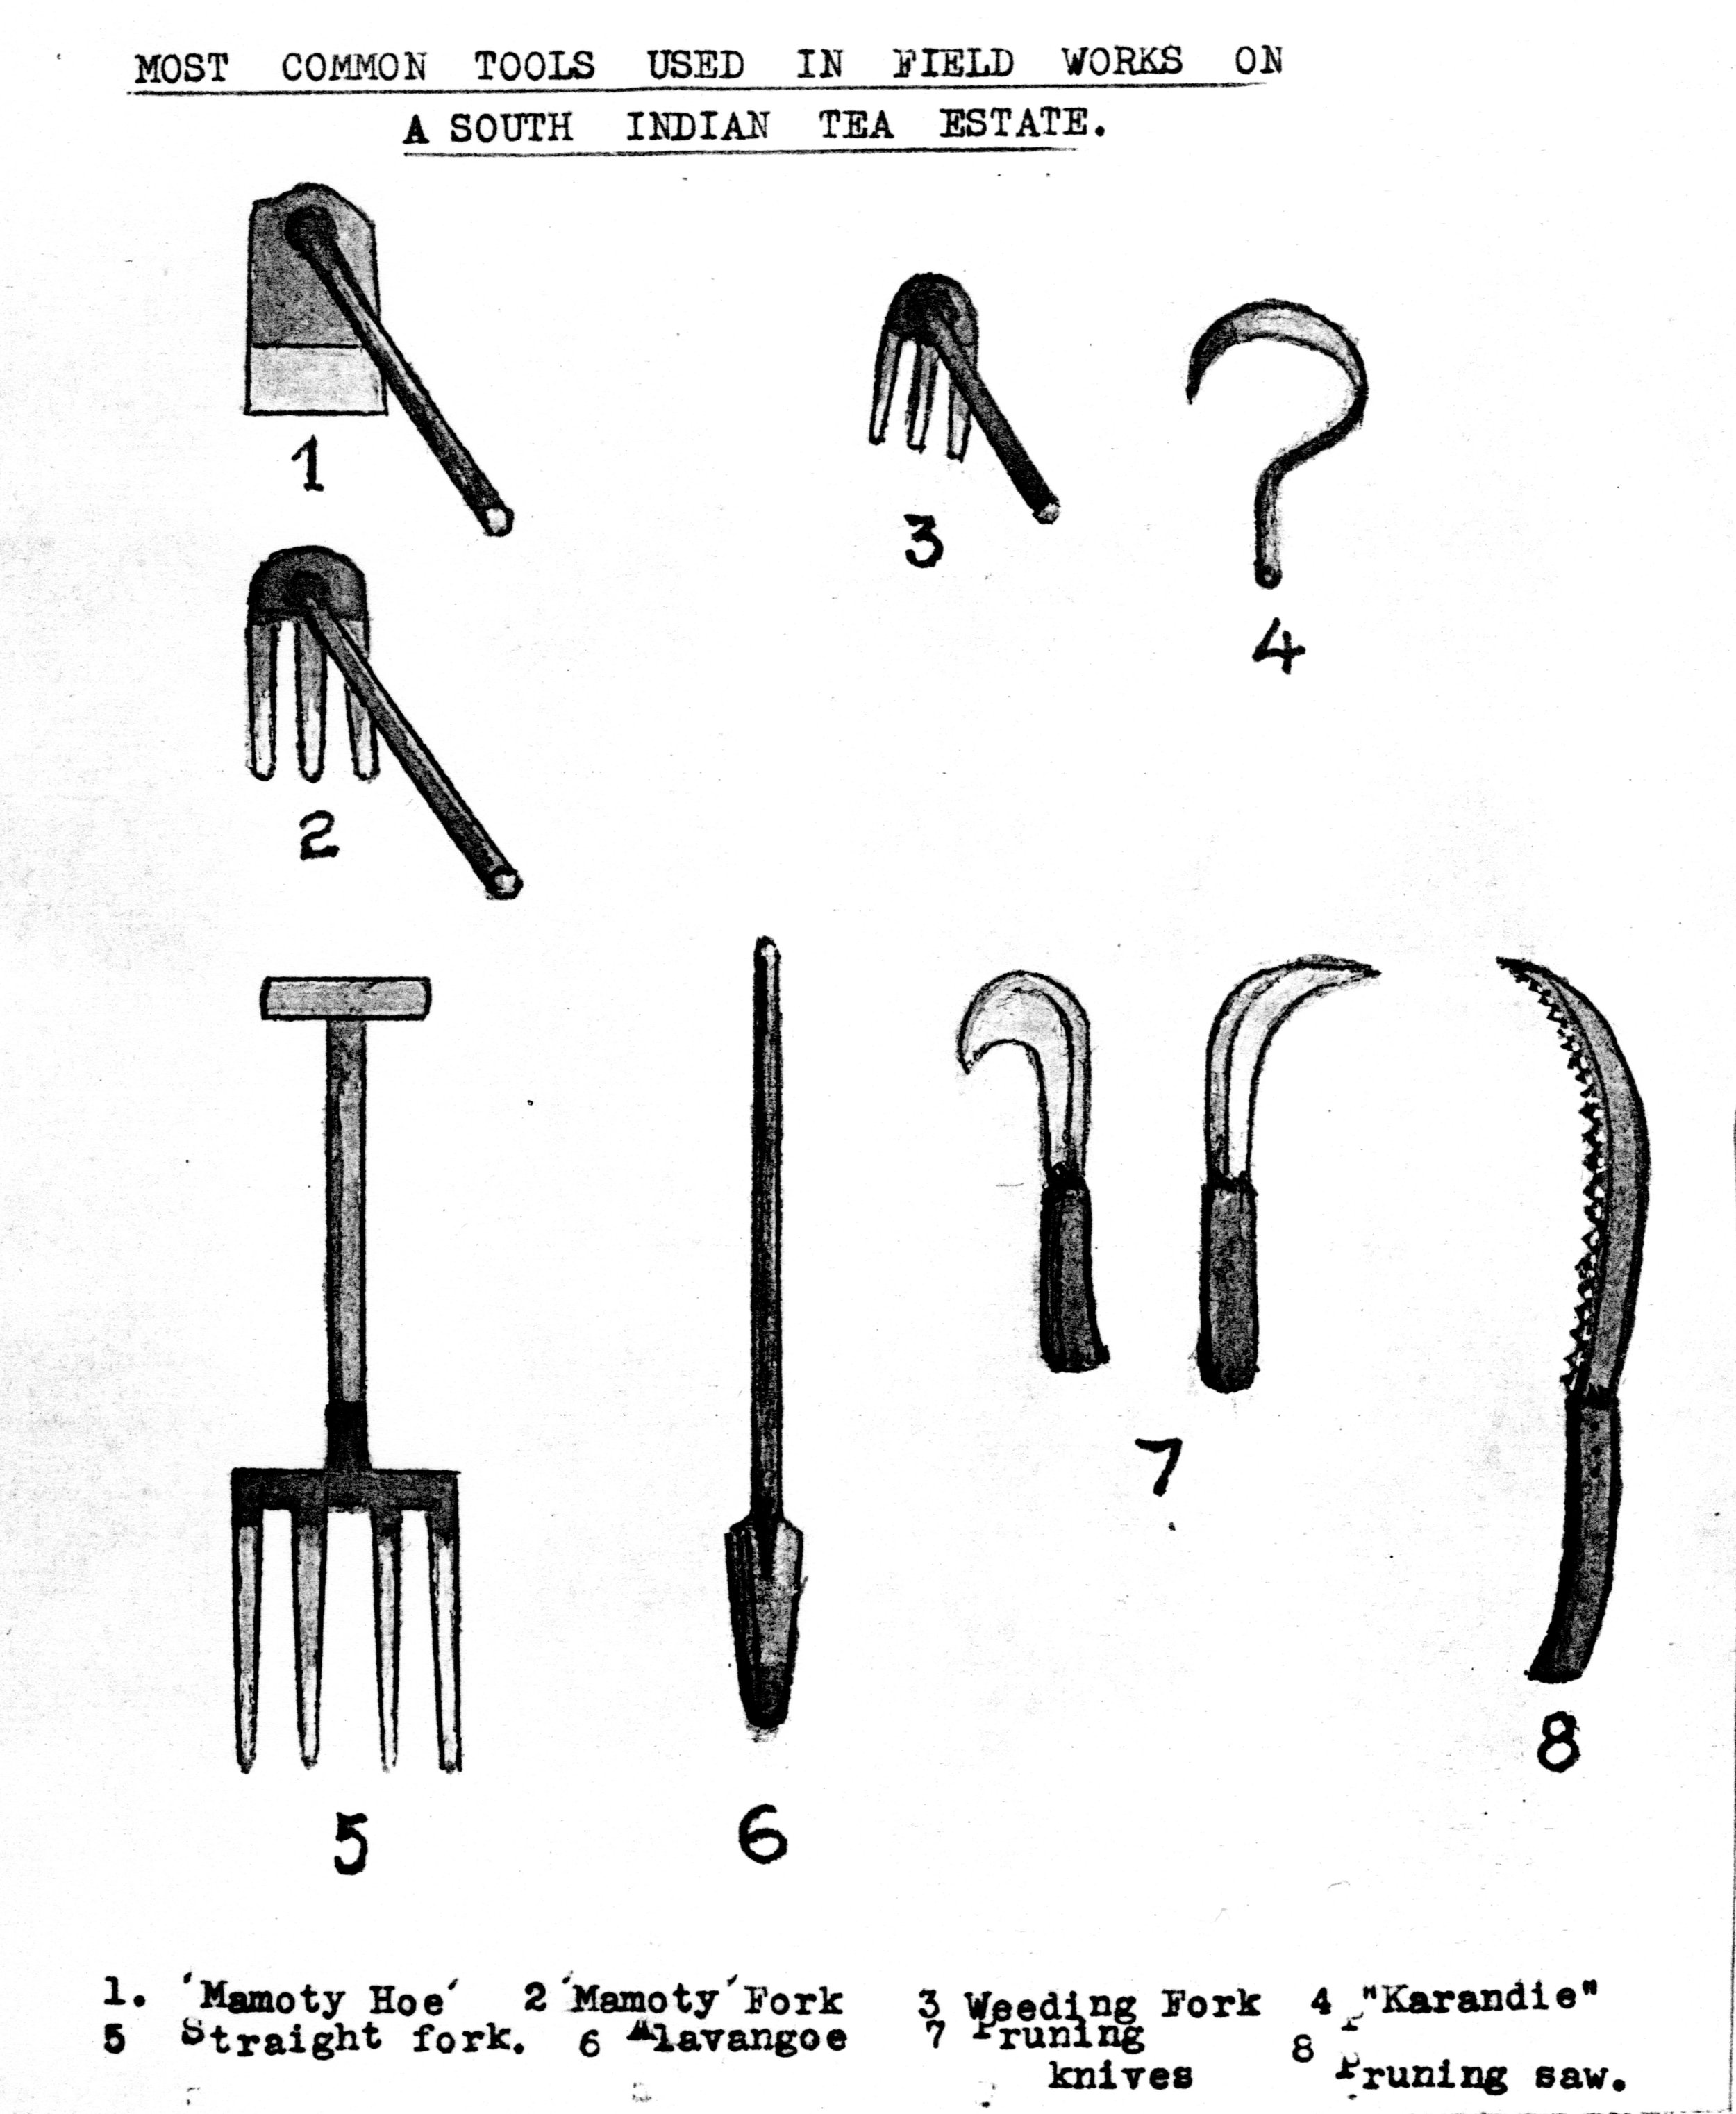 Figure 8: Sketches of common field tools